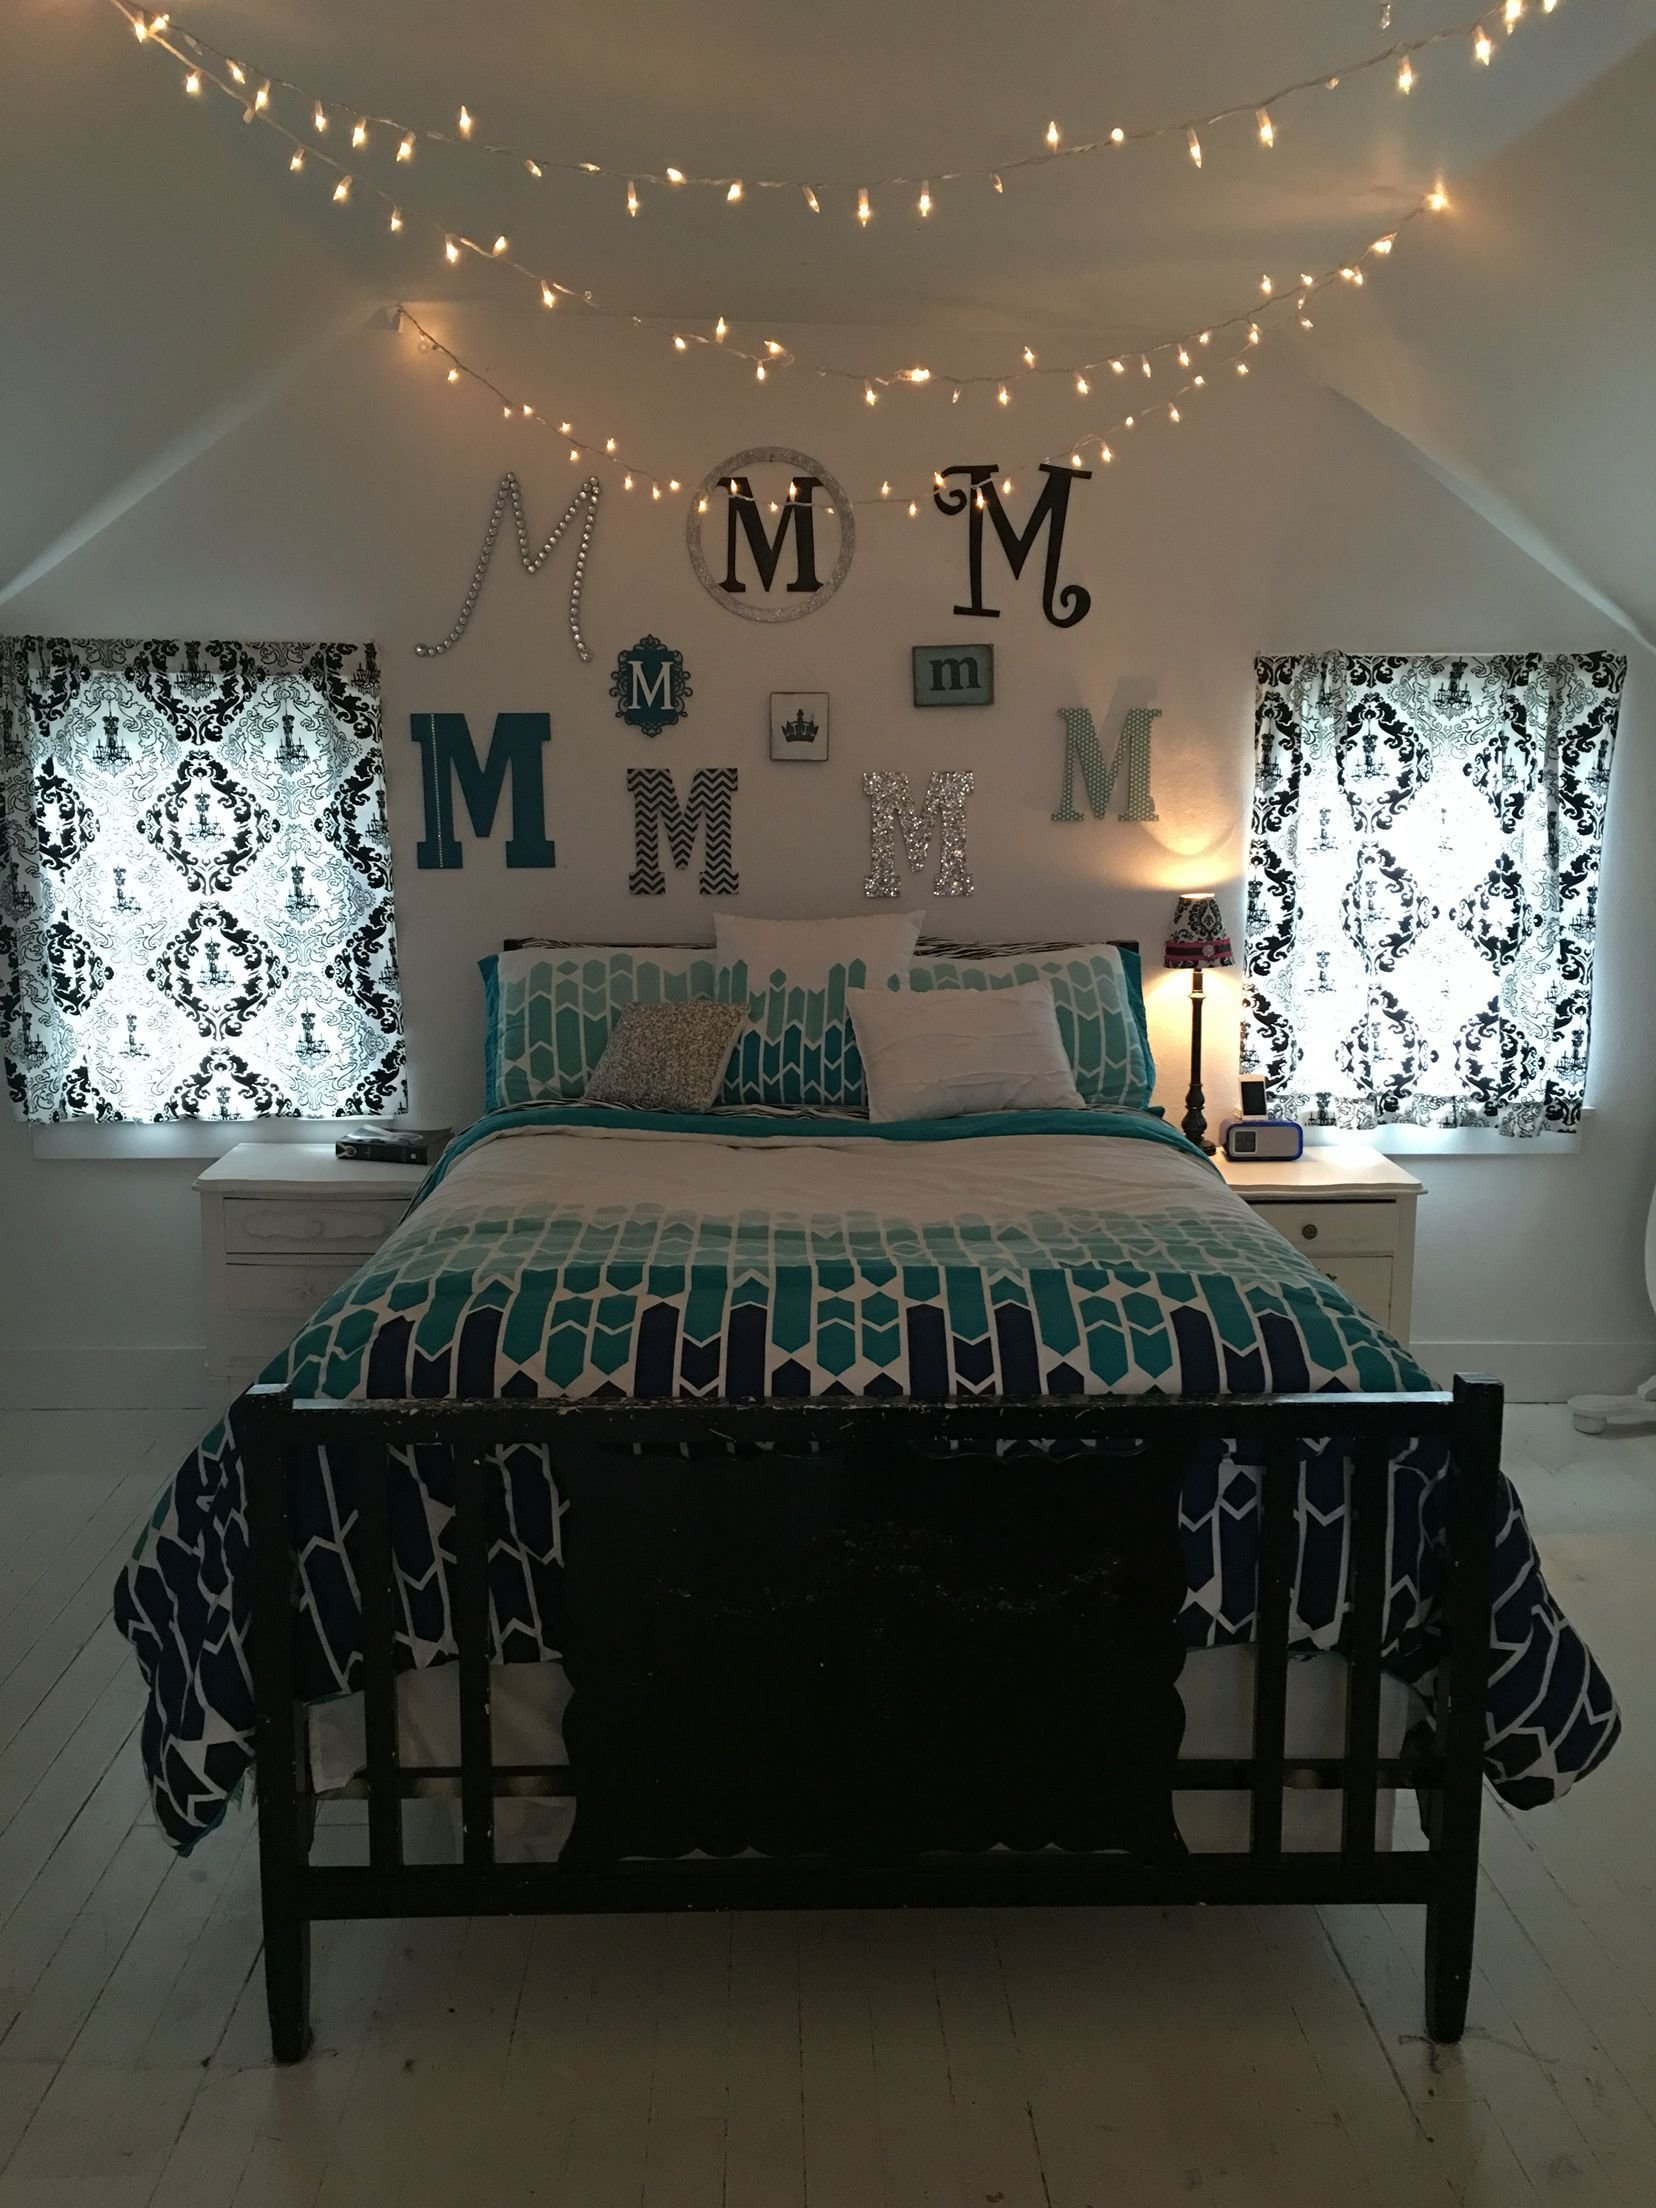 Best String Lights For Bedroom Ikea Ideas T**N Lighting With Pictures